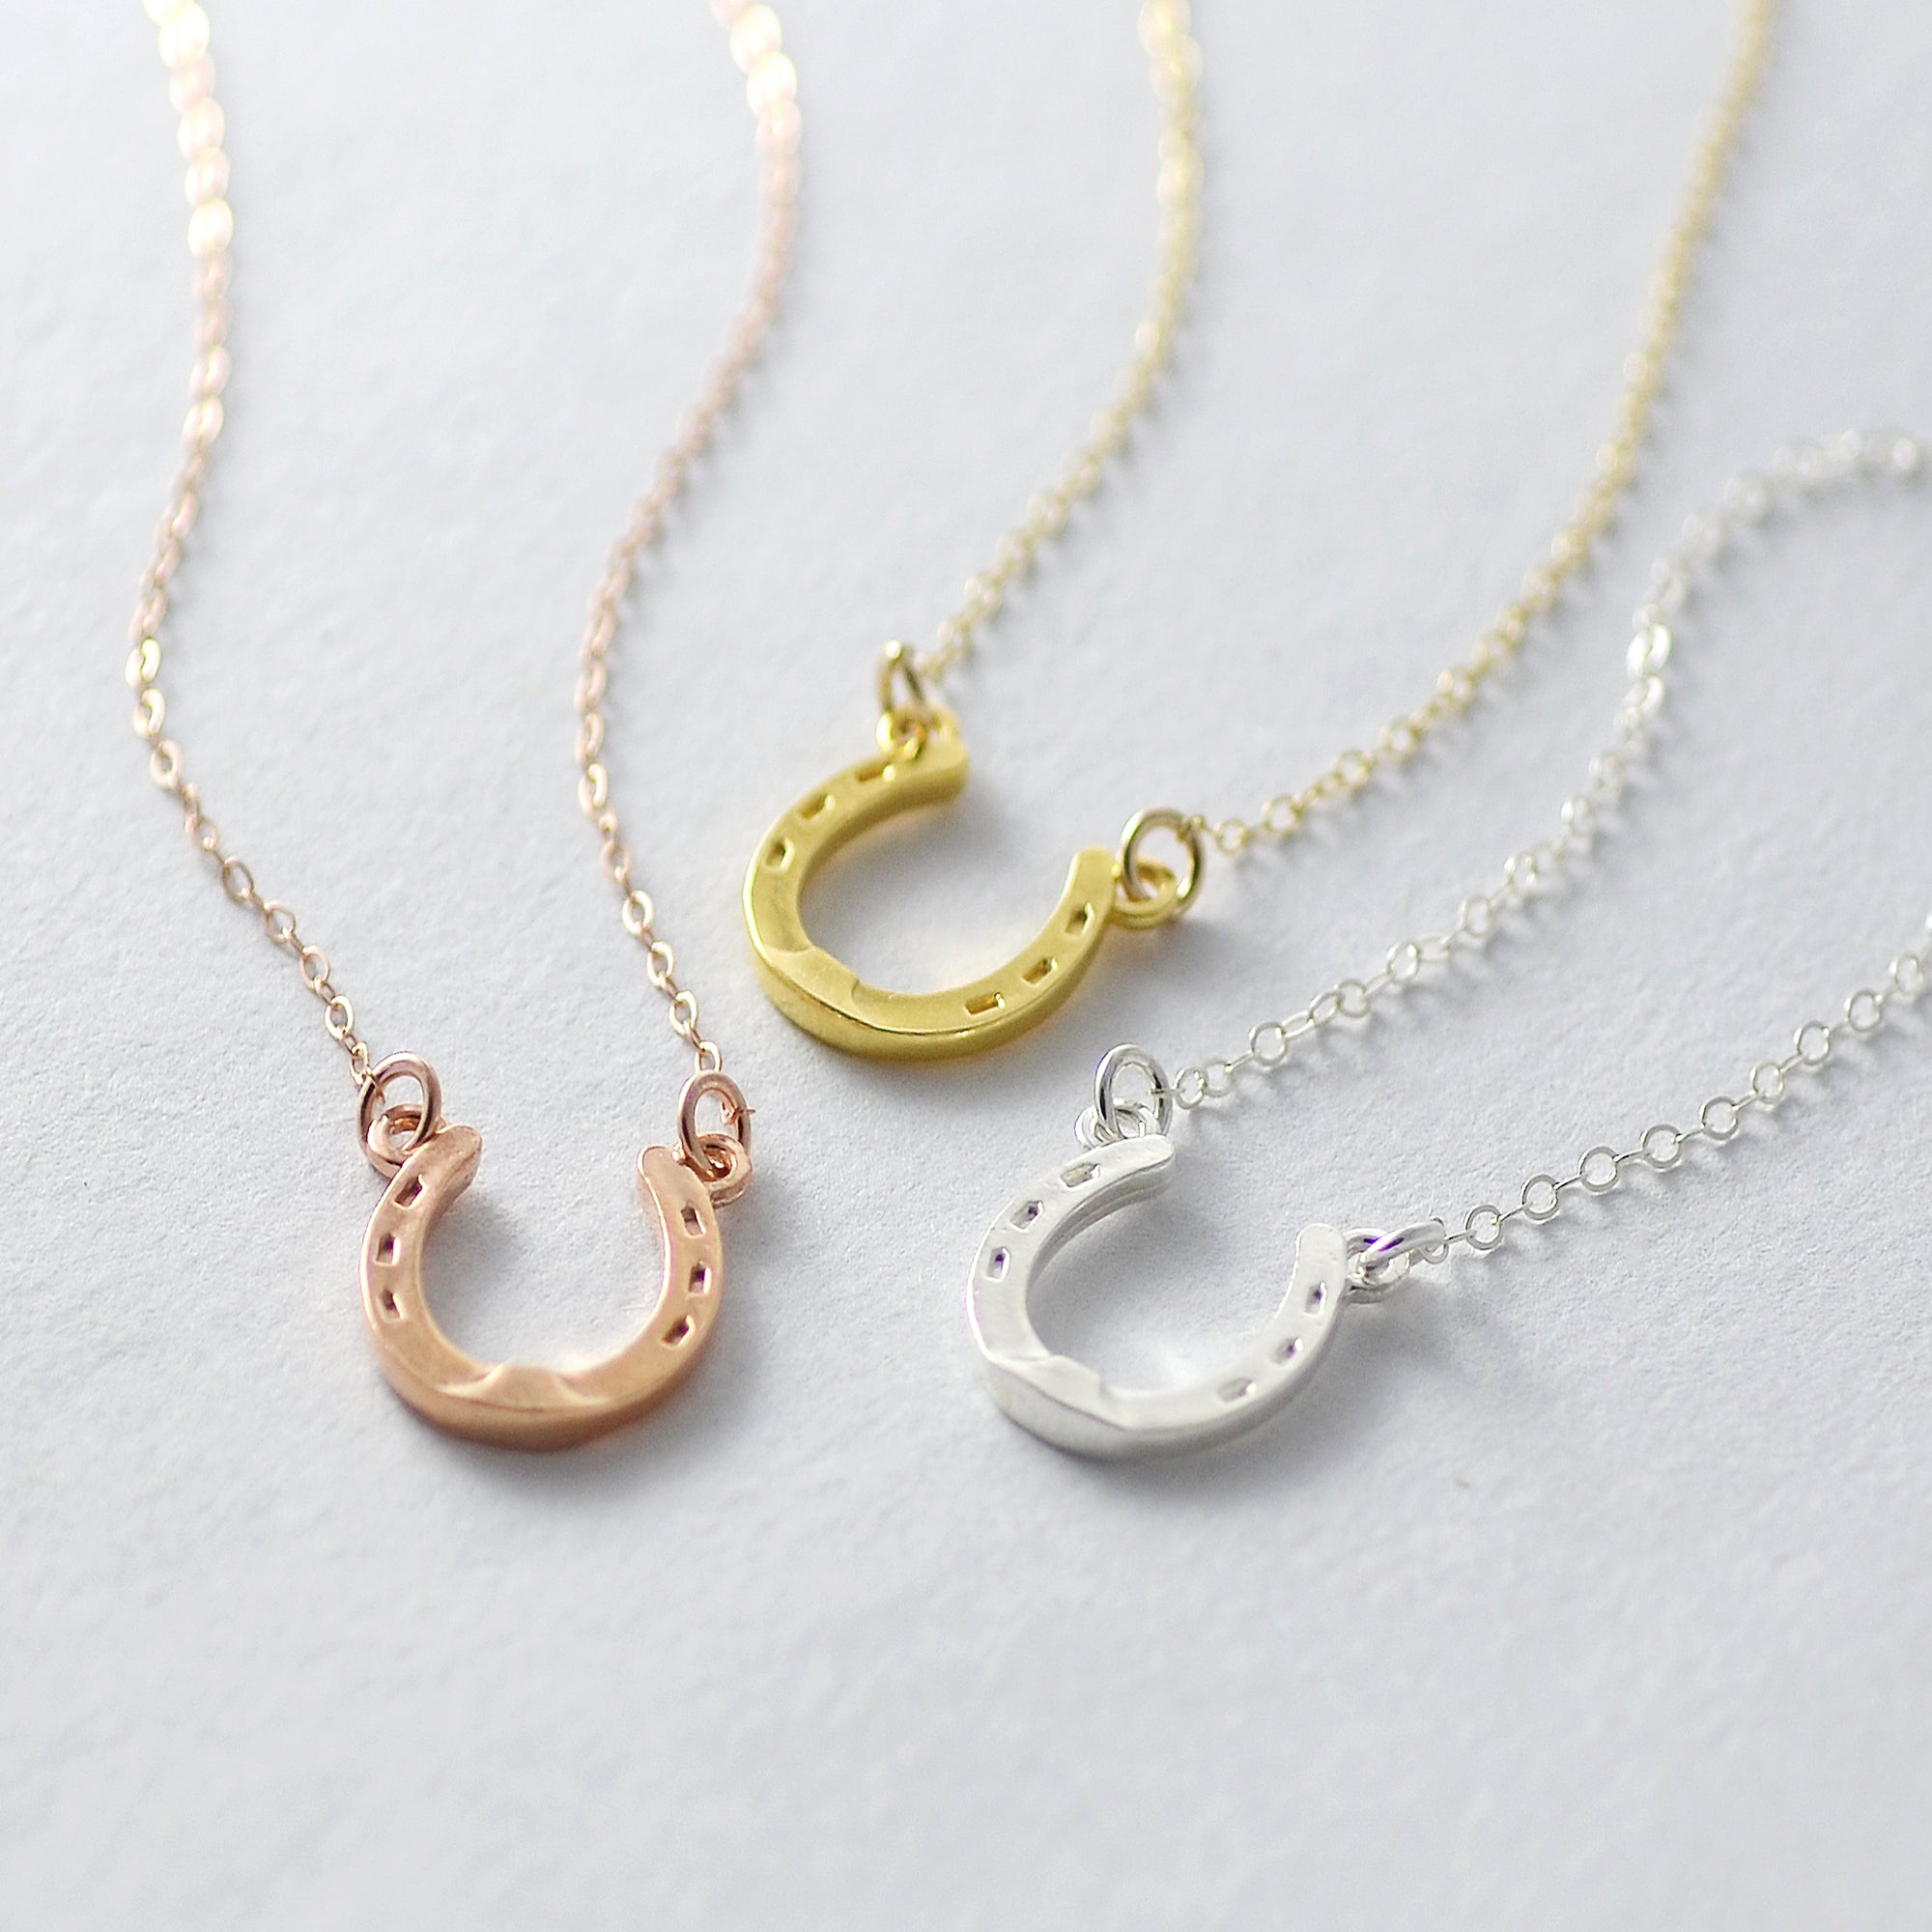 LUCKY Horse Shoe Charm Necklace